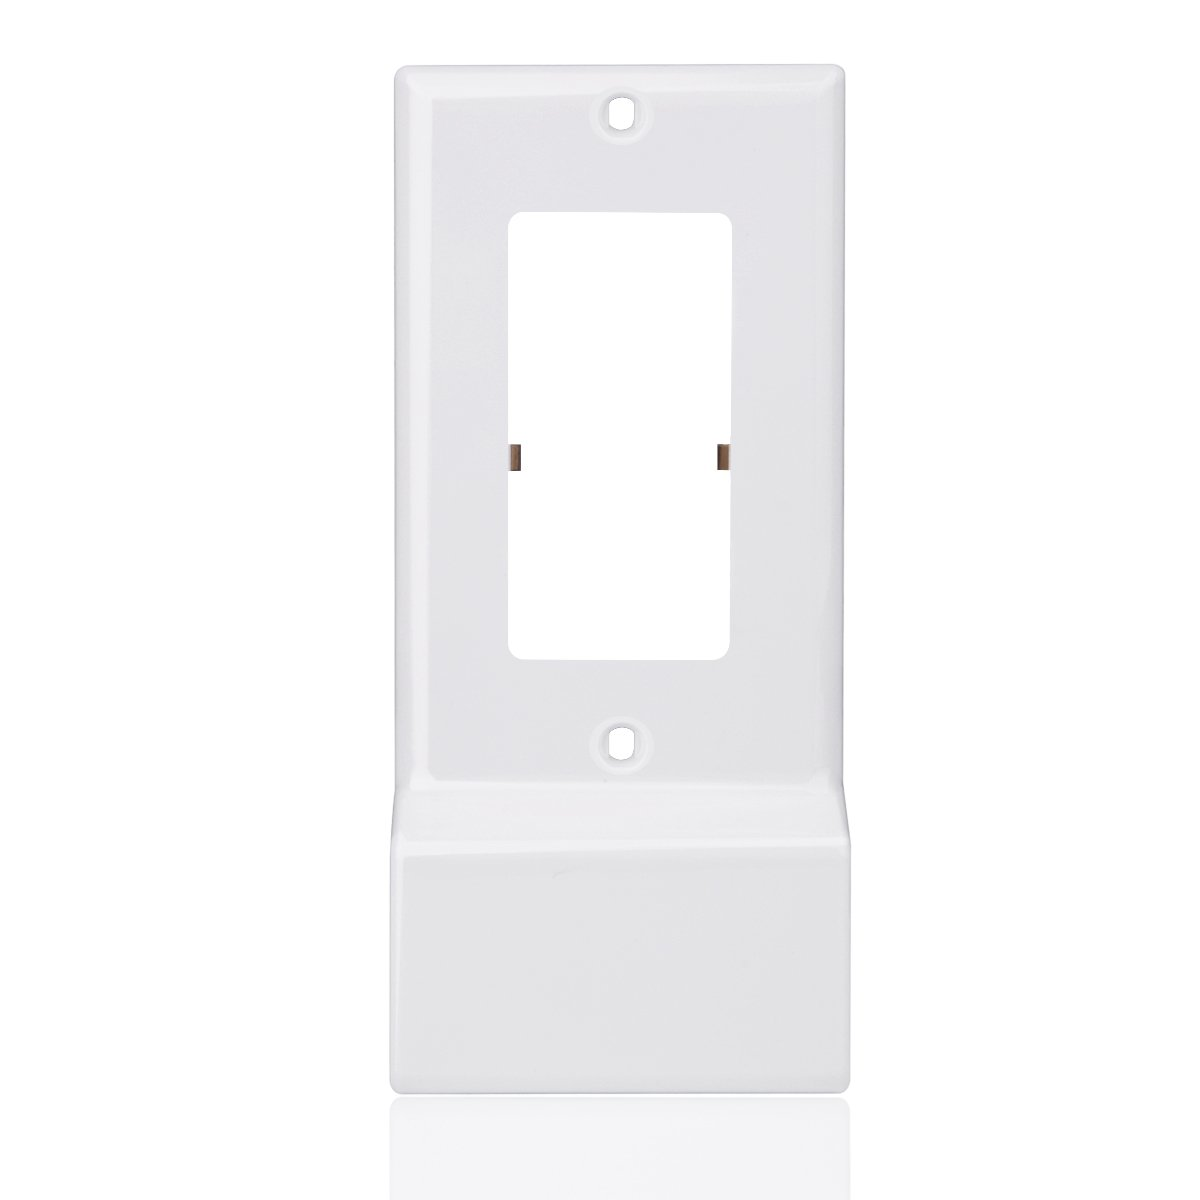 Wall Plate Cover, Easy Install Outlet Cover Plate with Dual High Speed USB Chargers  (Décor)